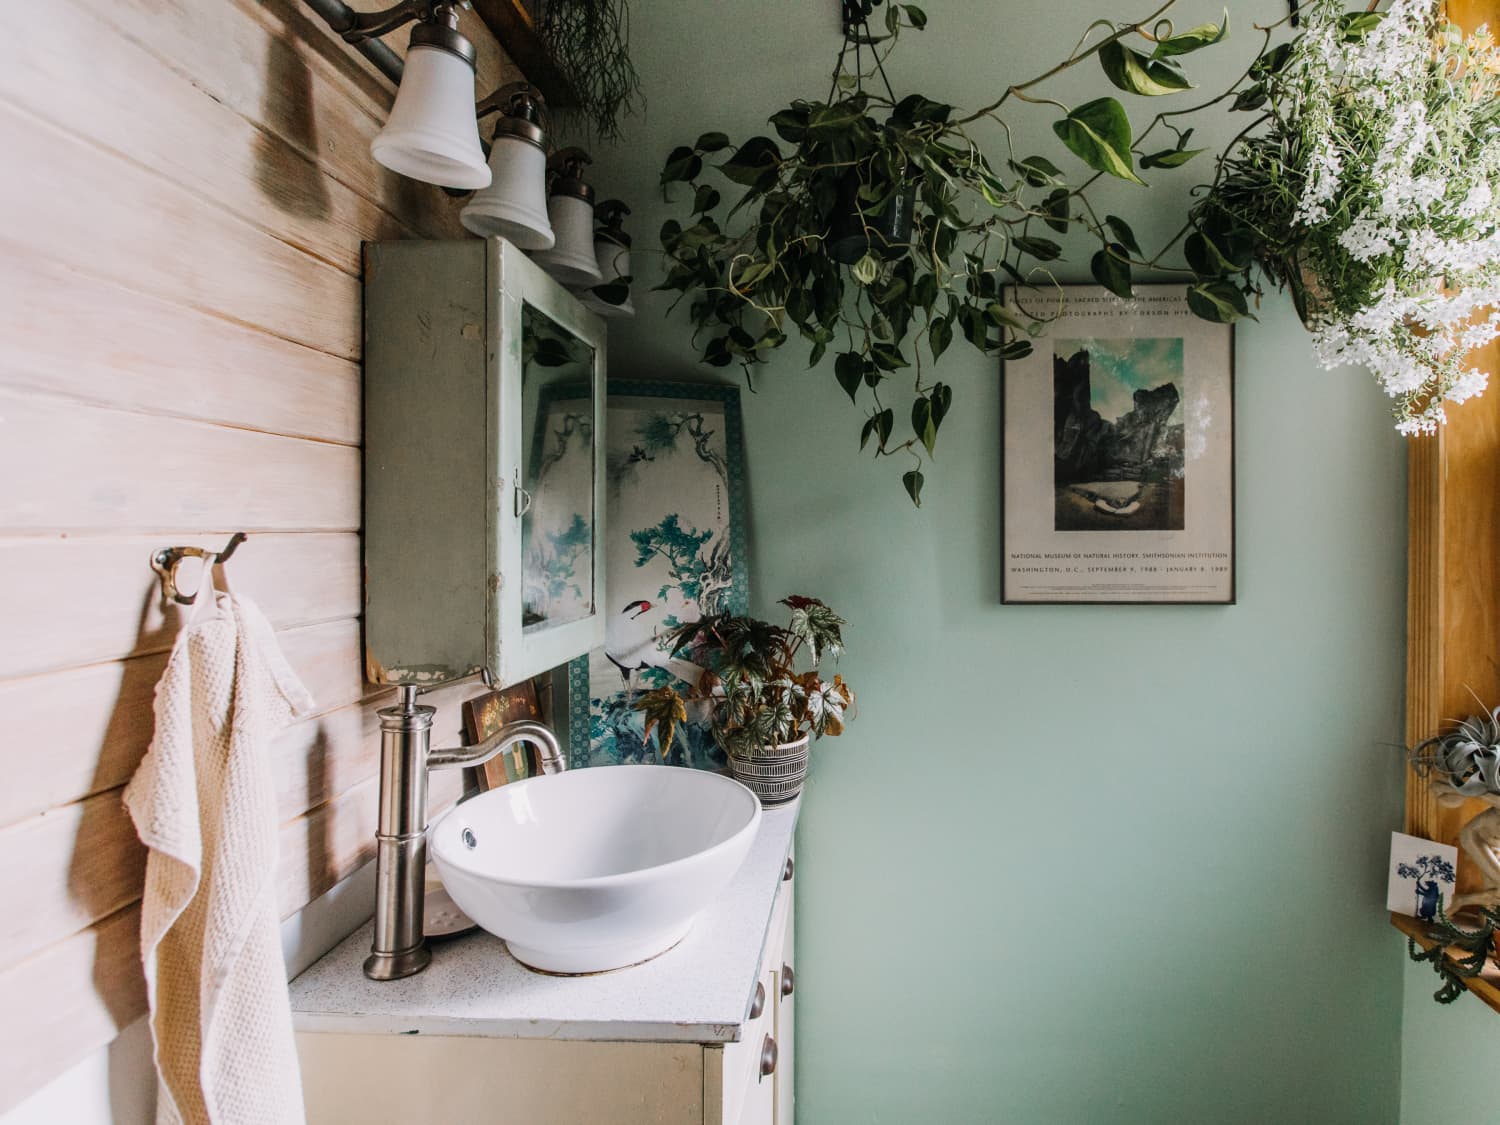 10 Best Bathroom Plants Houseplants For Warm Humid Spaces Apartment Therapy